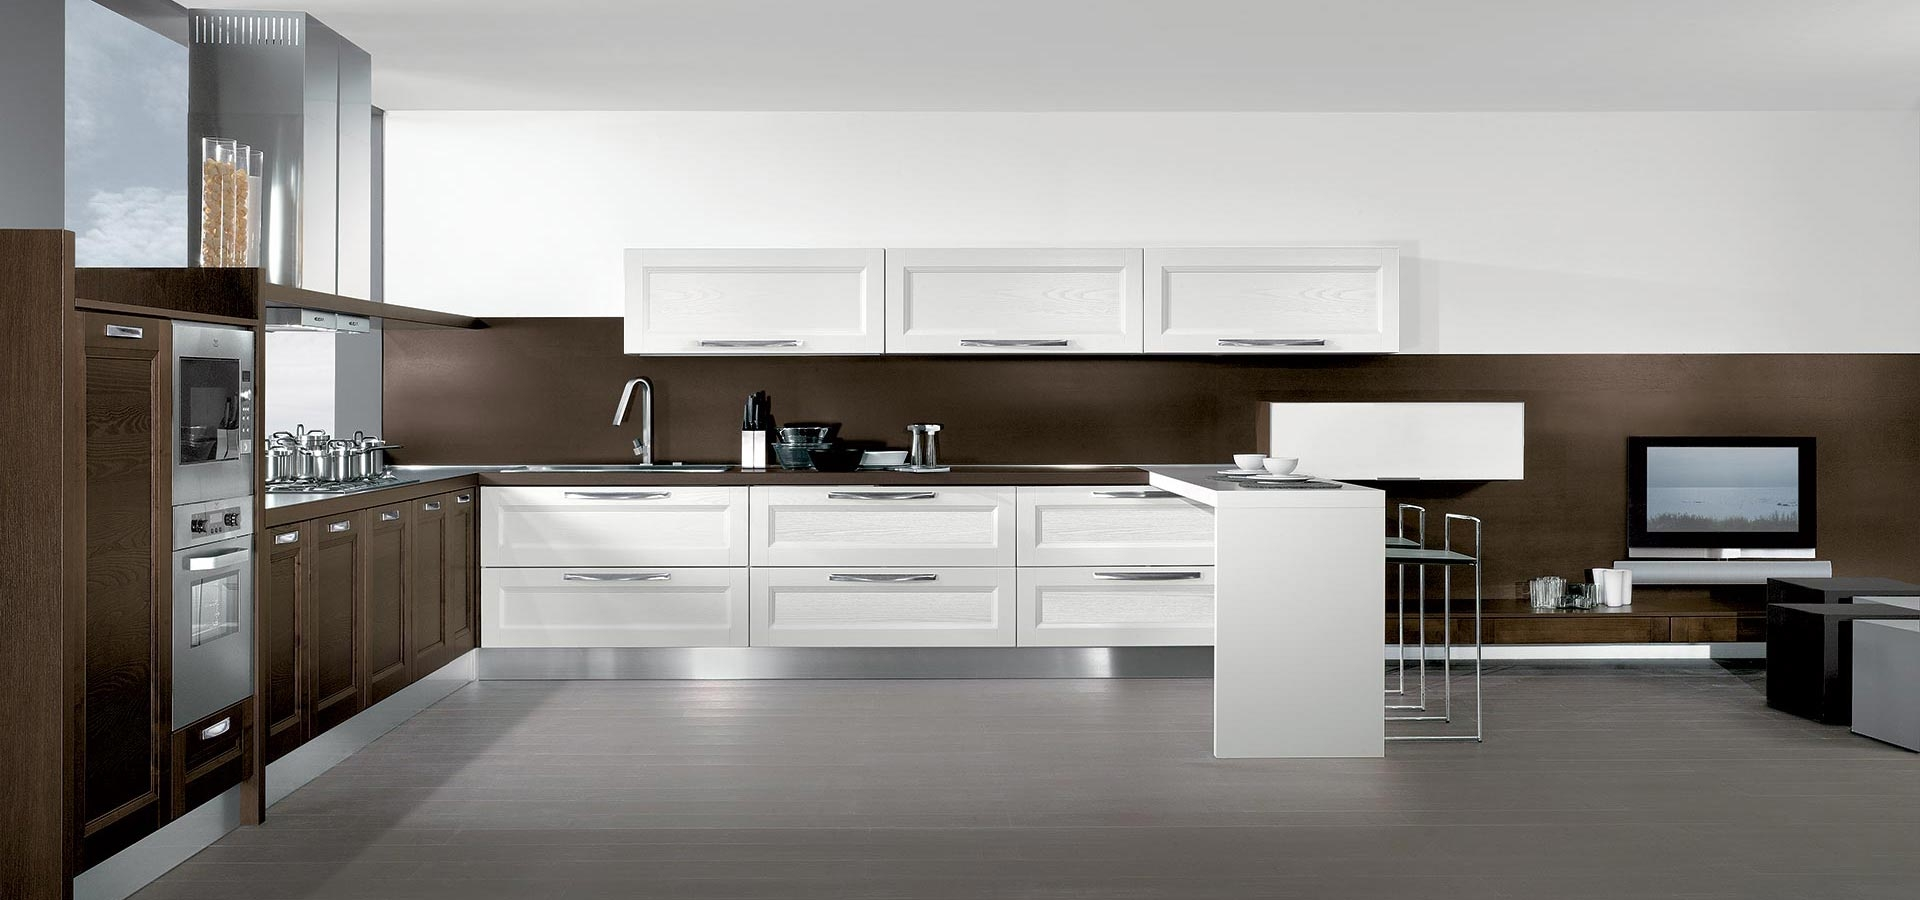 Gio Modern Fitted Wooden Kitchens Abingdon Oxfordshire Vision Design